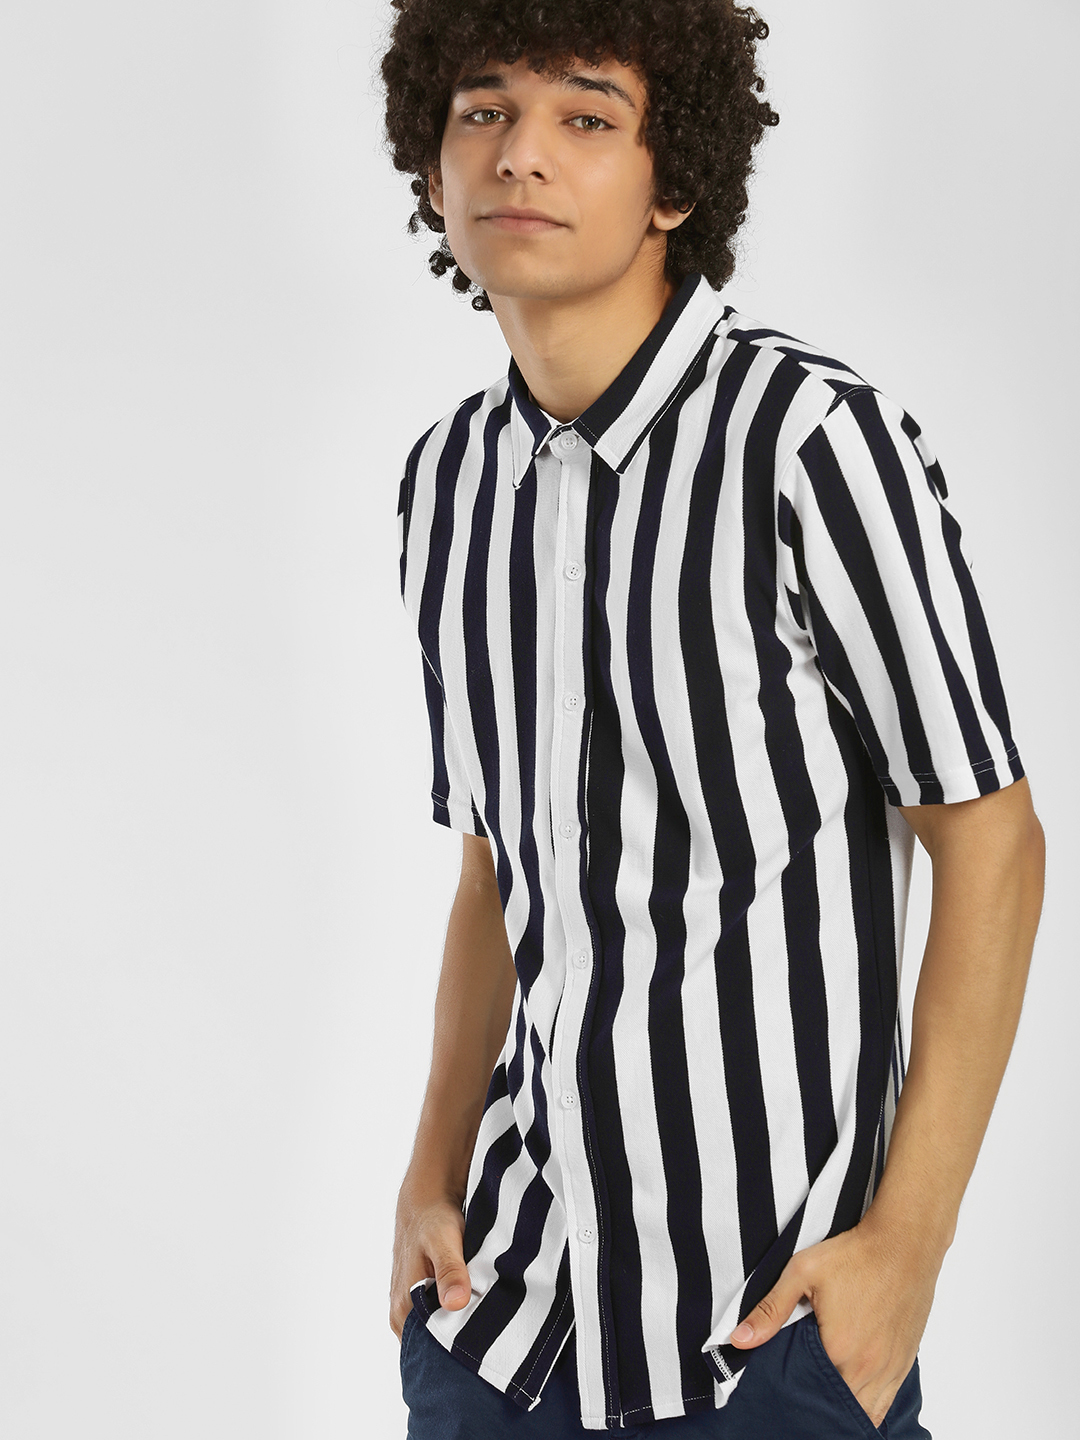 Garcon Multi Pique Vertical Stripe Slim Shirt 1